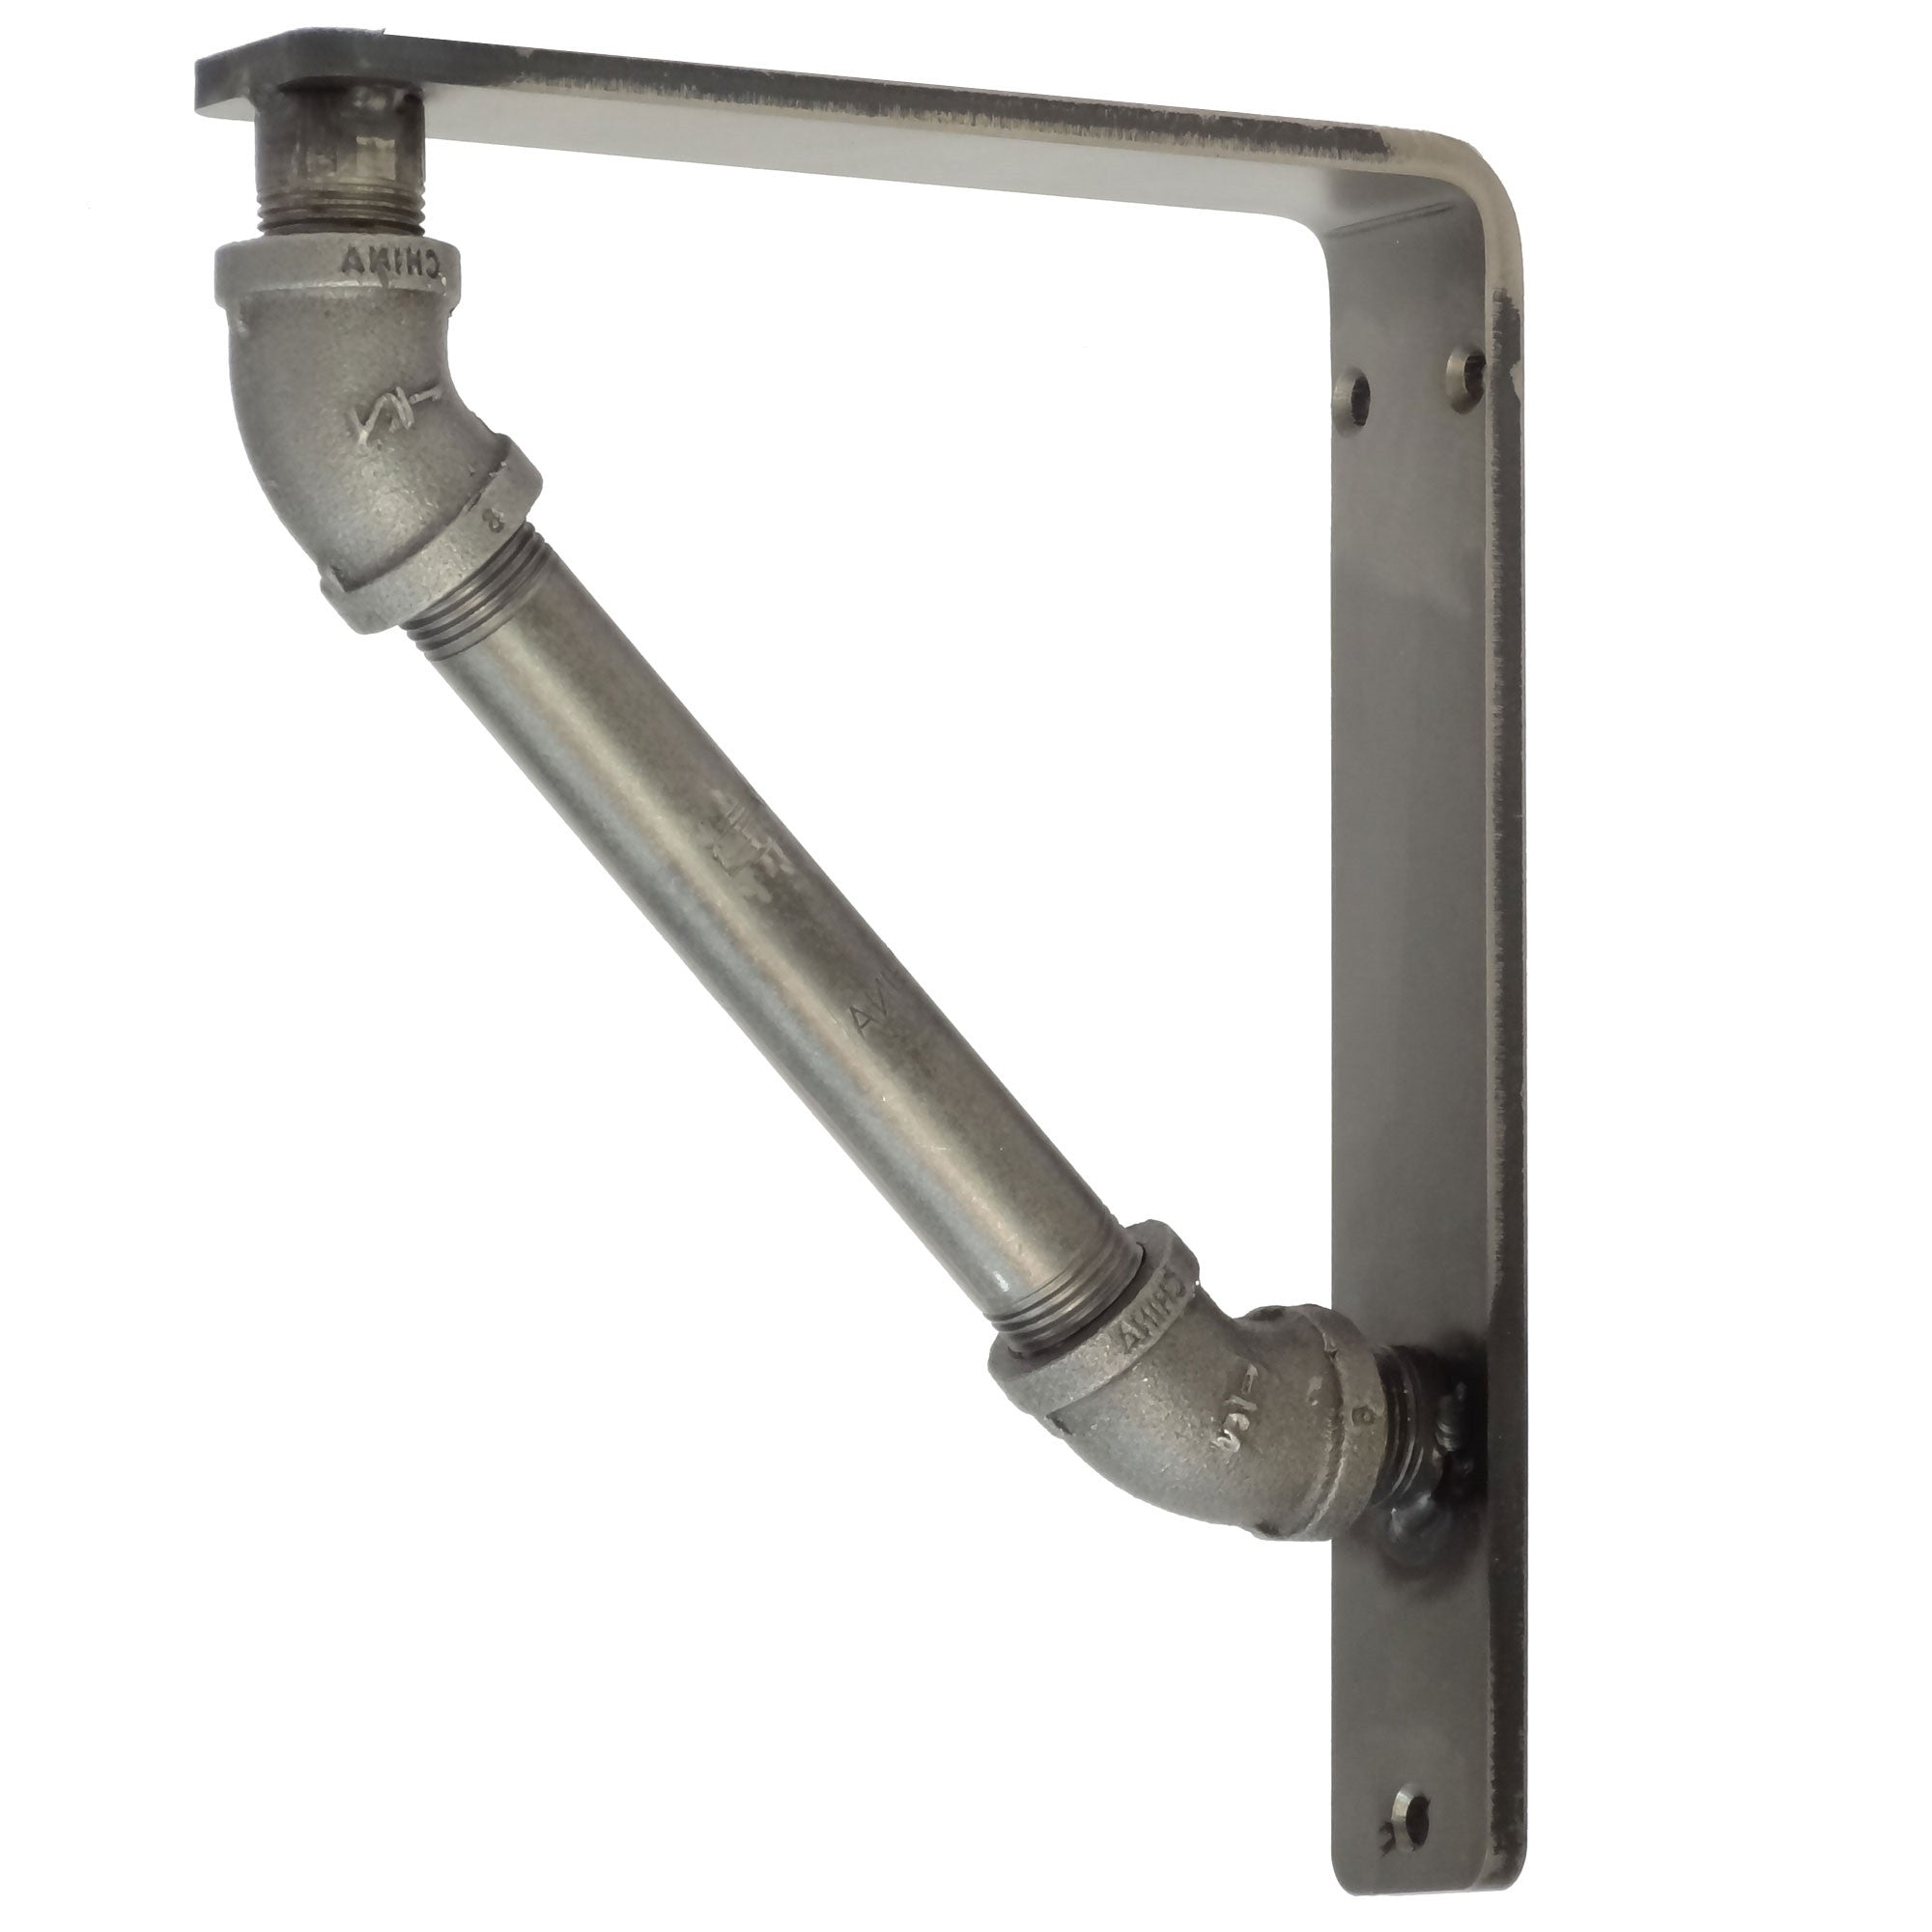 Pictured here is our 1.5inch wide Industrial Iron Shelf Bracket. This is the same bracket as our 1.5 Industrial Iron Corbel.